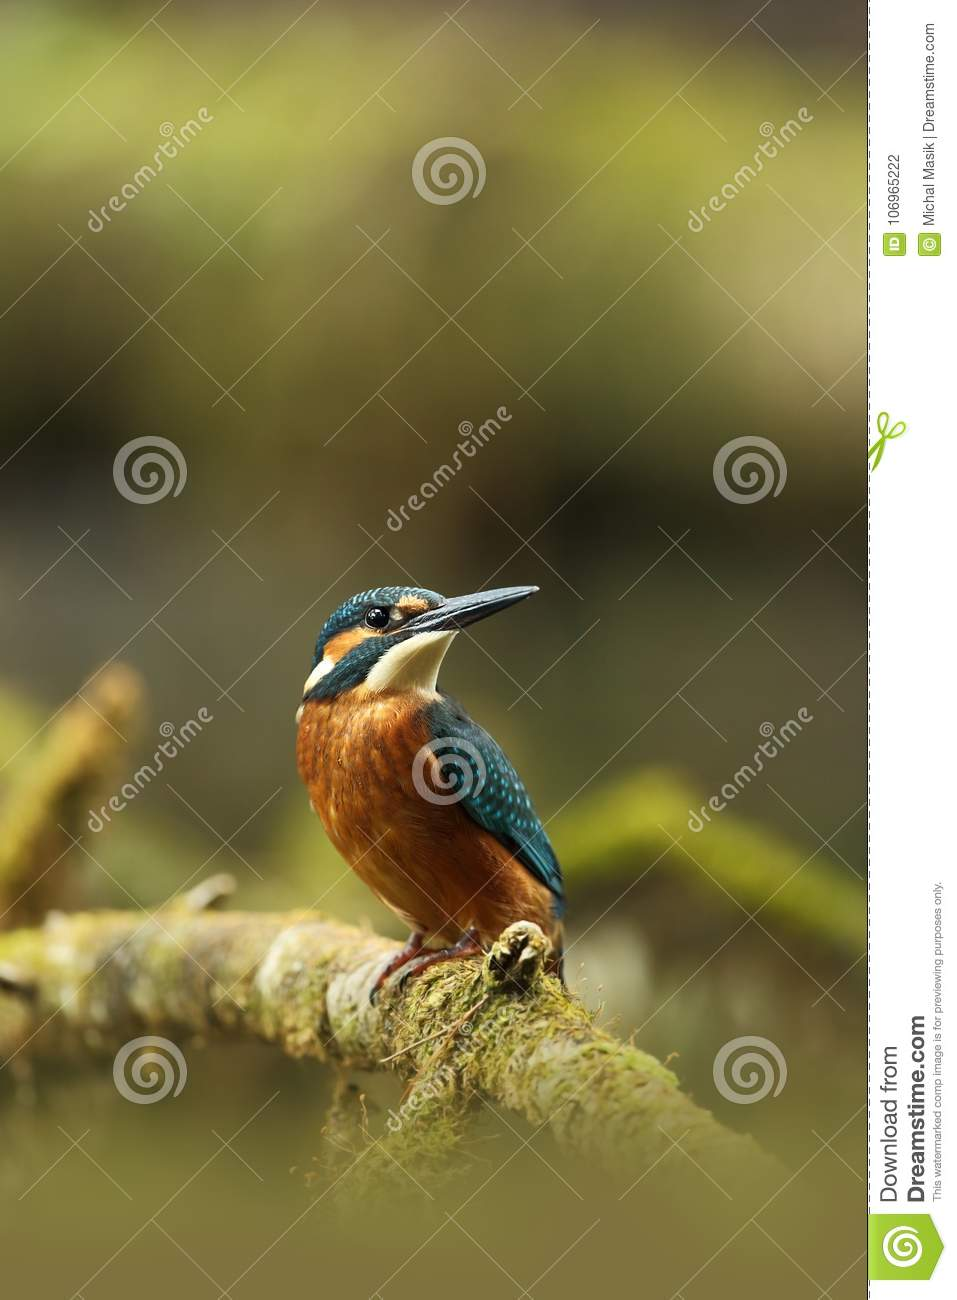 Alcedo atthis. It occurs throughout Europe. Looking for slow-flowing rivers.